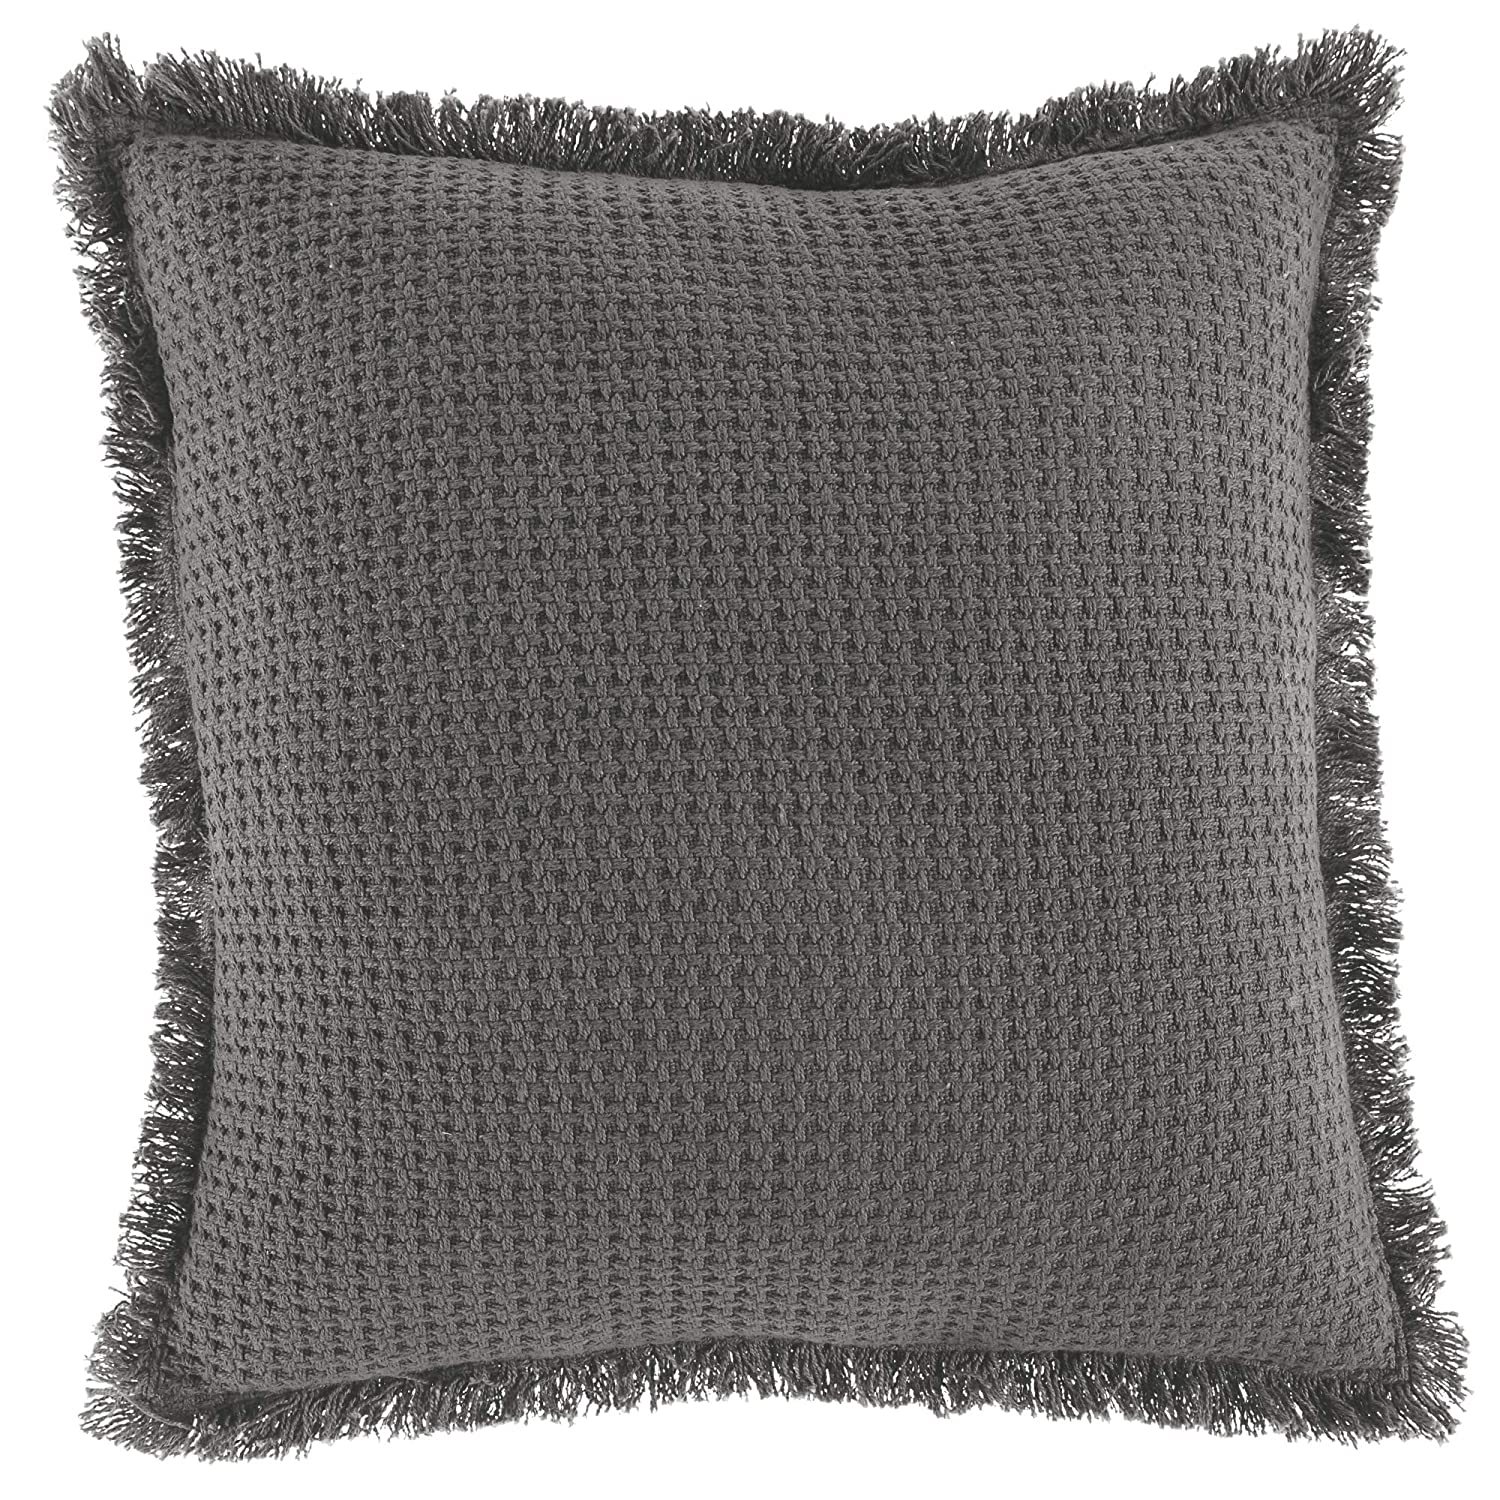 Amazon.com: Signature Design by Ashley Ruysser Pillow, Gray ...